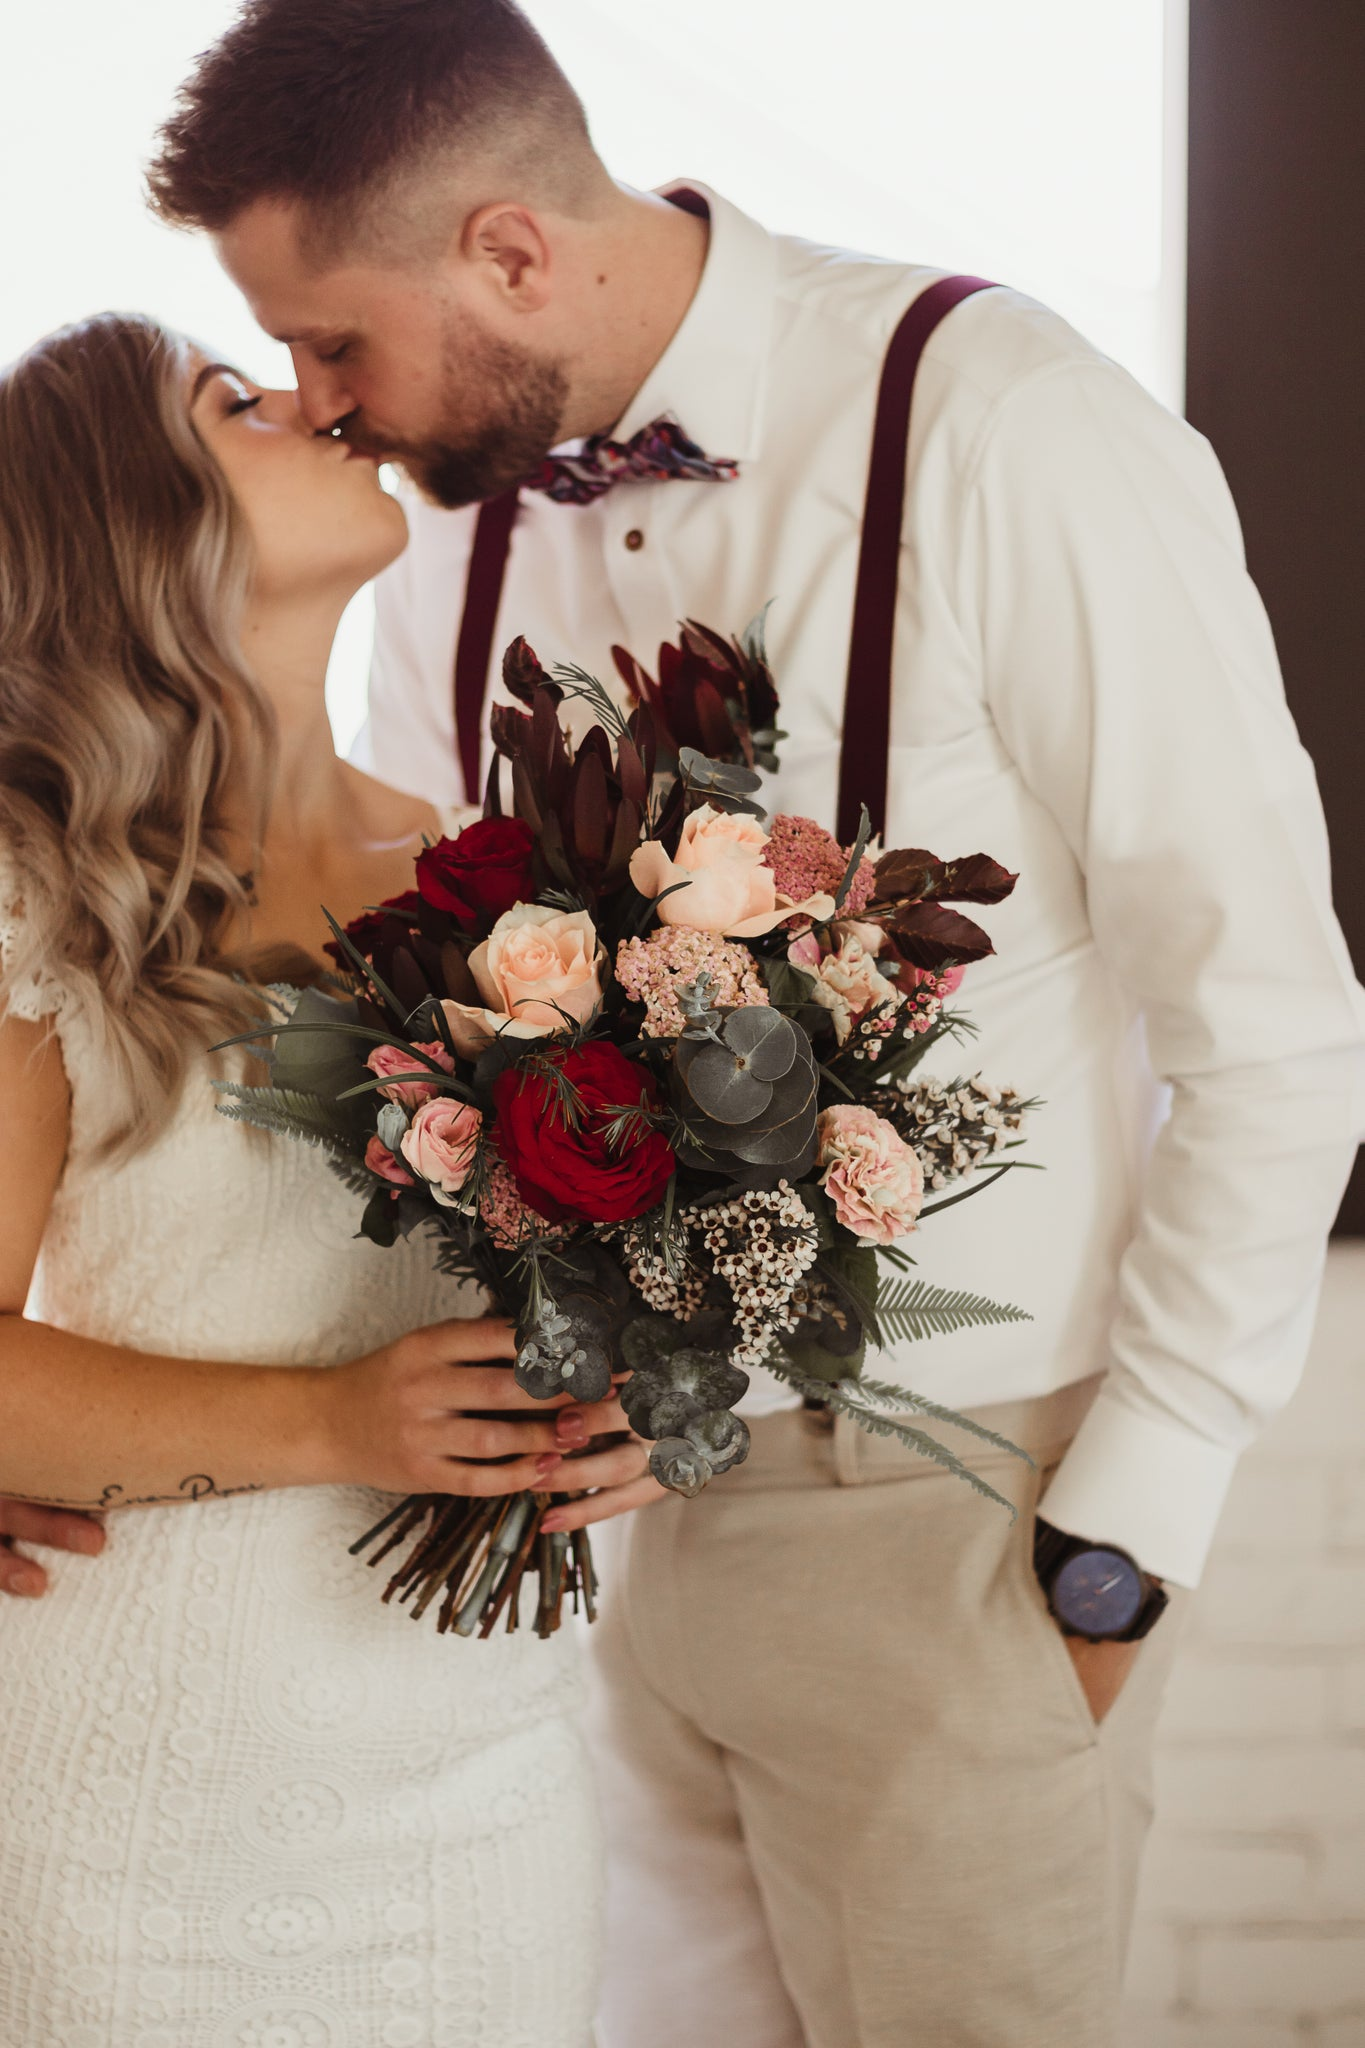 Soon to be Bride and Groom (fiances) kissing before their wedding (a surprise elopement) at The Warehouse venue in Geelong, VIC, Australia. The bride-to-be is holding pink and red flowers.